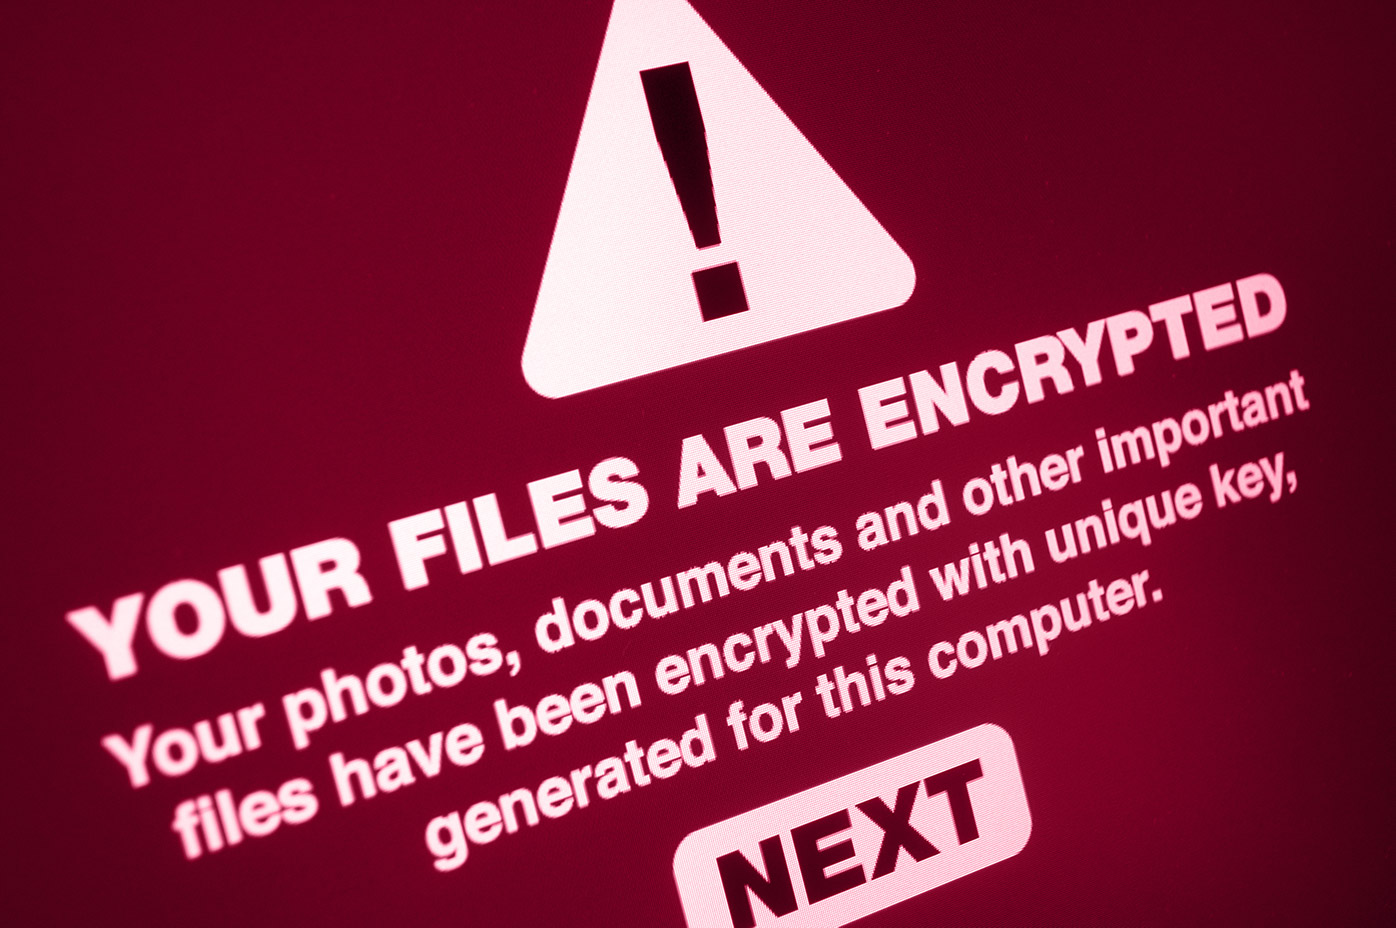 Ransomware as a Service: Attackers are Publishing Data of Companies Not Paying Ransom